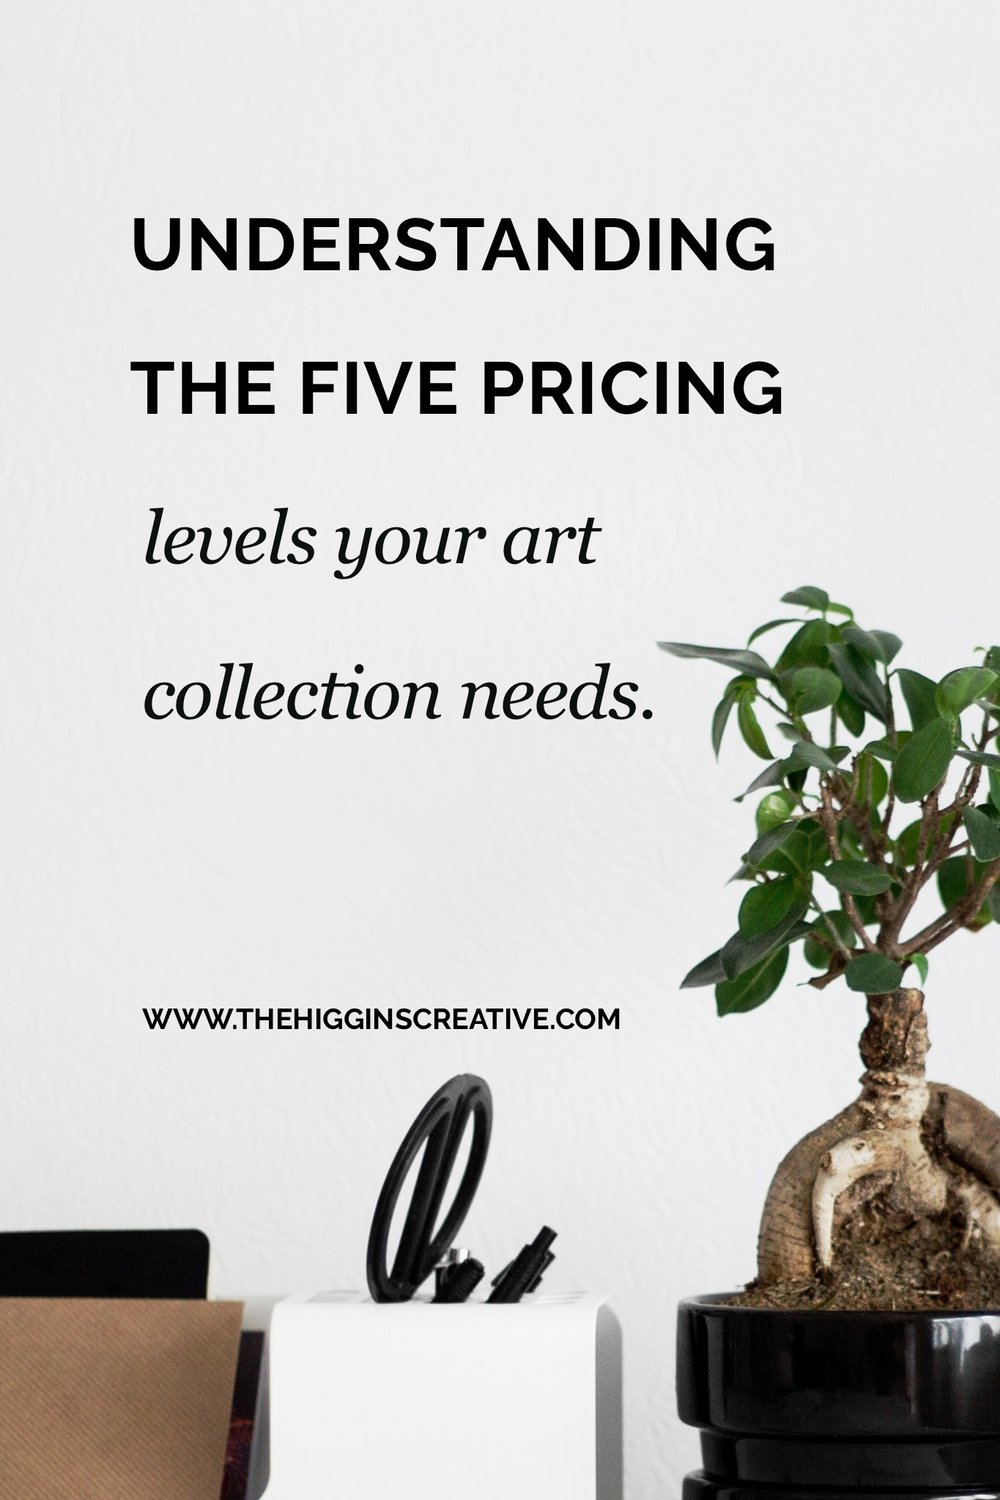 As an artist and maker it's important to consider the five price points your art collection needs when you launch. When people struggle to pay for your art and you've built up a relationship you will often change your pricing constantly to fit them. These points will help you set price points to eliminate any issues with pricing and help you make money from your art.